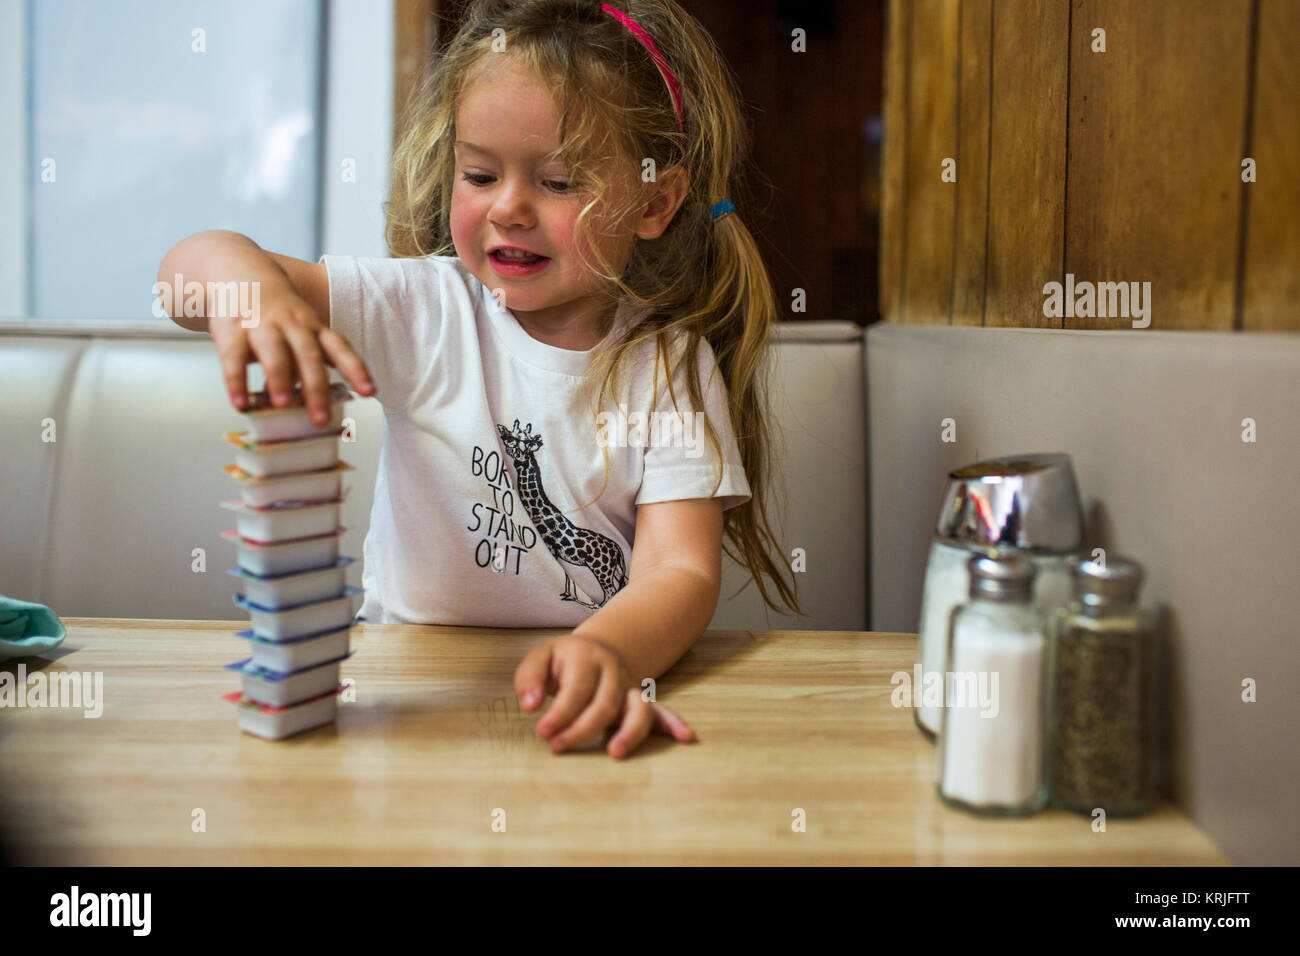 Smiling Caucasian girl stacking jelly containers in restaurant booth - Stock Image